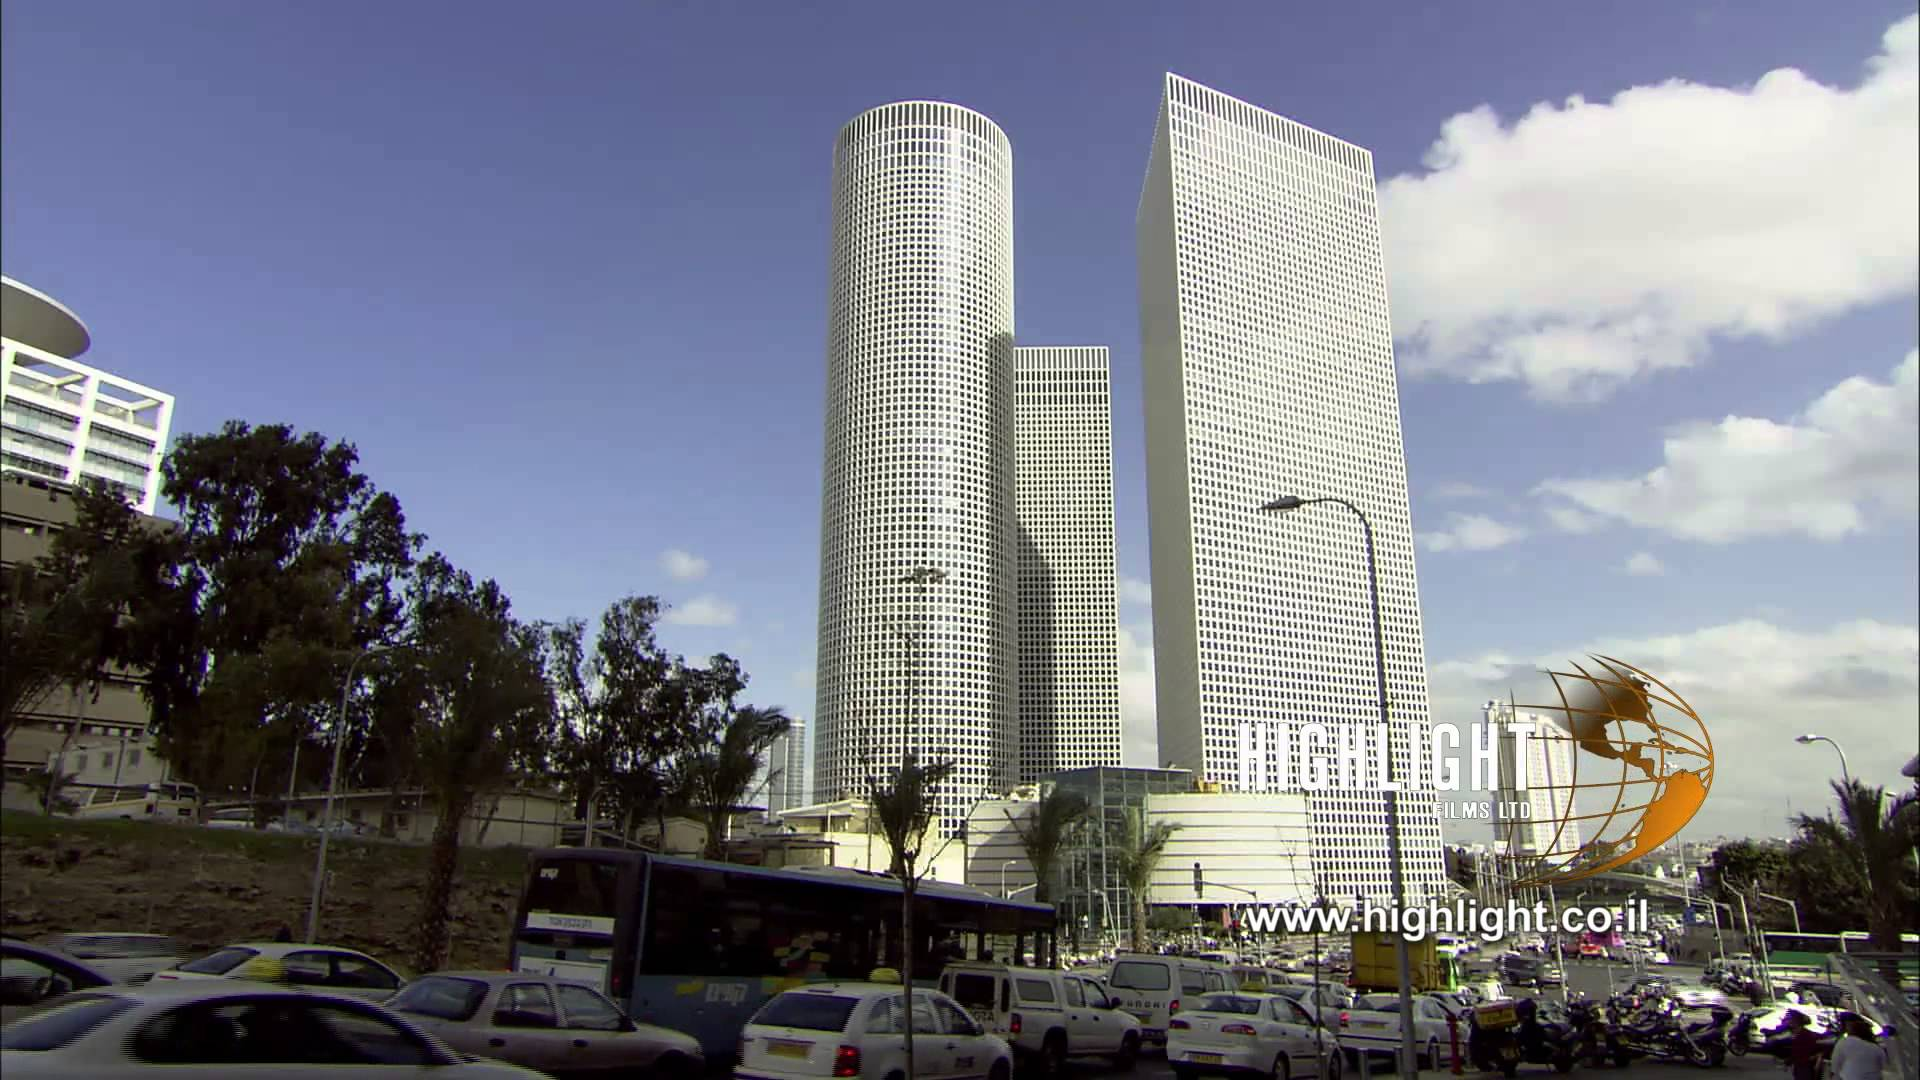 Azrieli Towers Tel Aviv, T 015 Israel Footage library: Tel Aviv footage - Traffic near ...